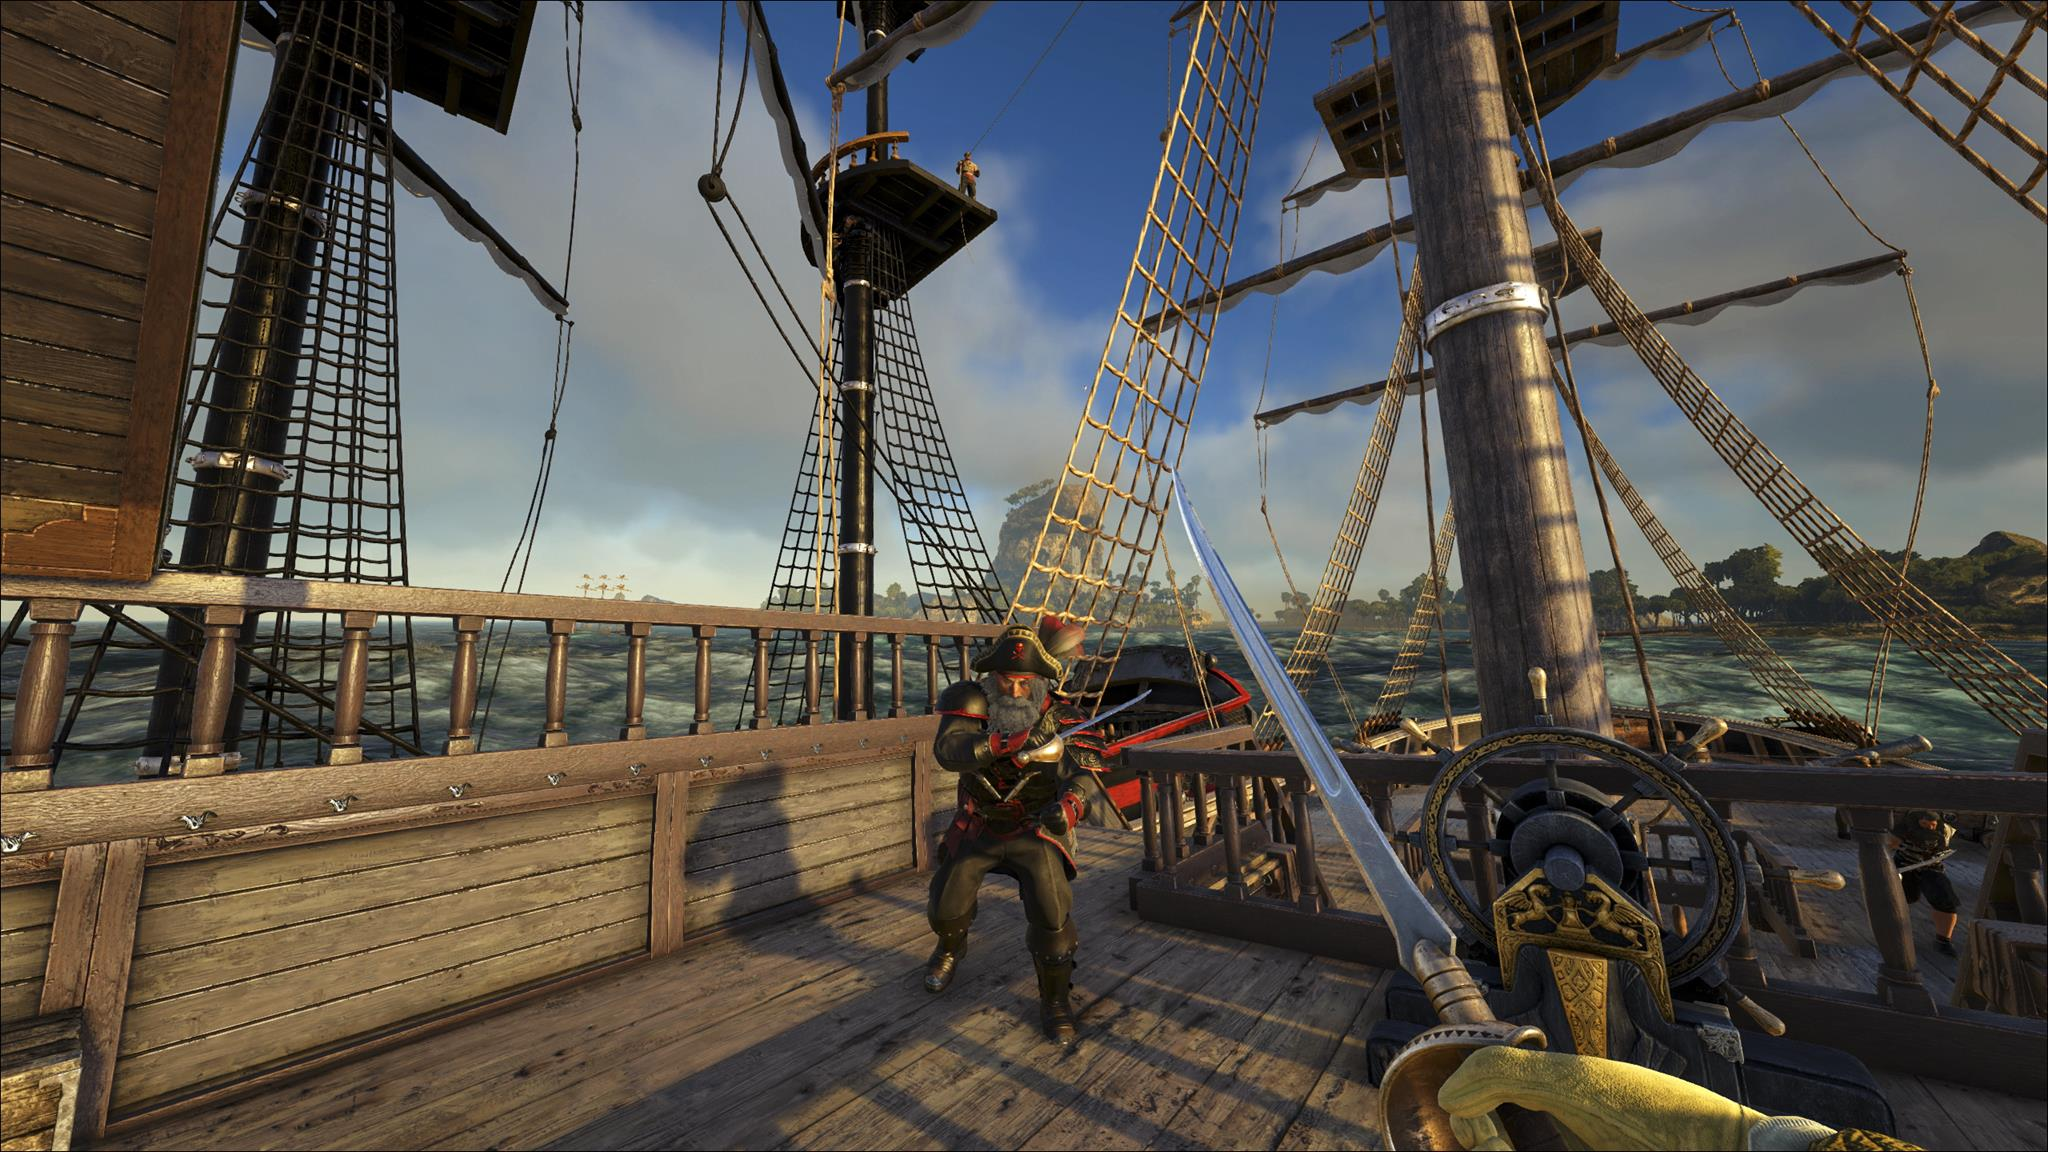 Atlas is a 40,000 players pirate MMO from the creators of